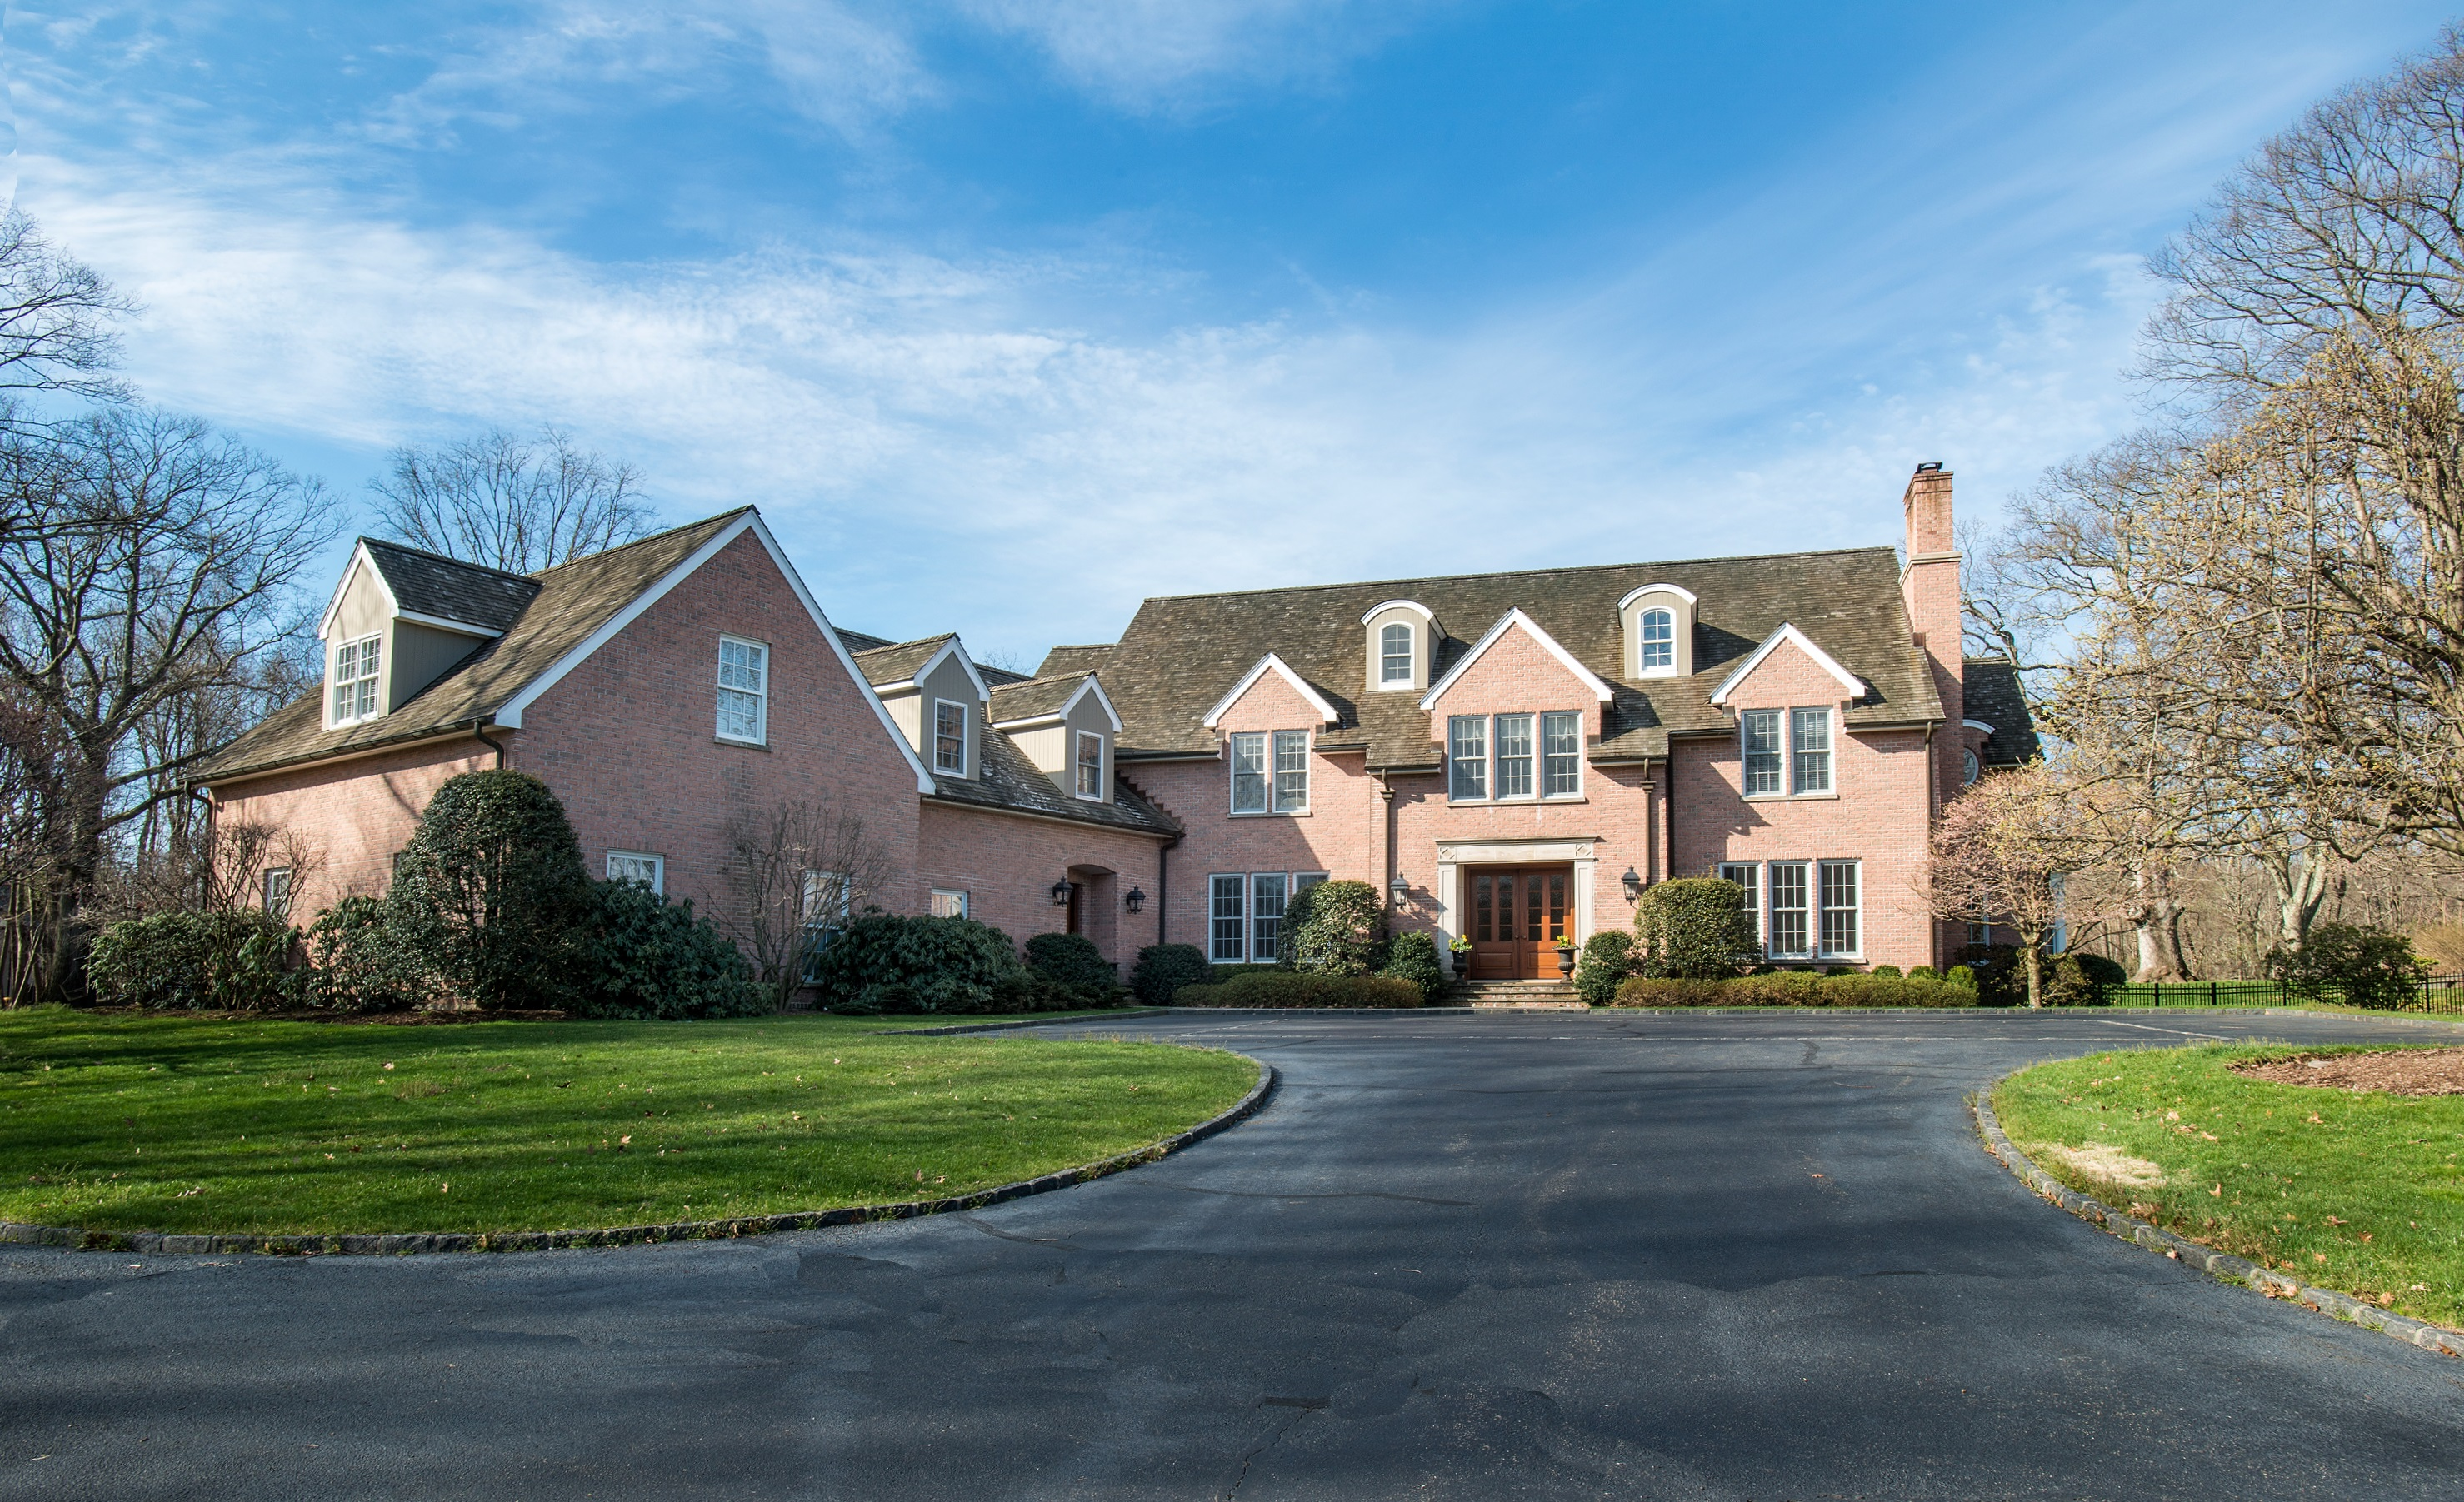 Single Family Home for Sale at Permanence and Presence 910 Smith Ridge Road New Canaan, Connecticut, 06840 United States